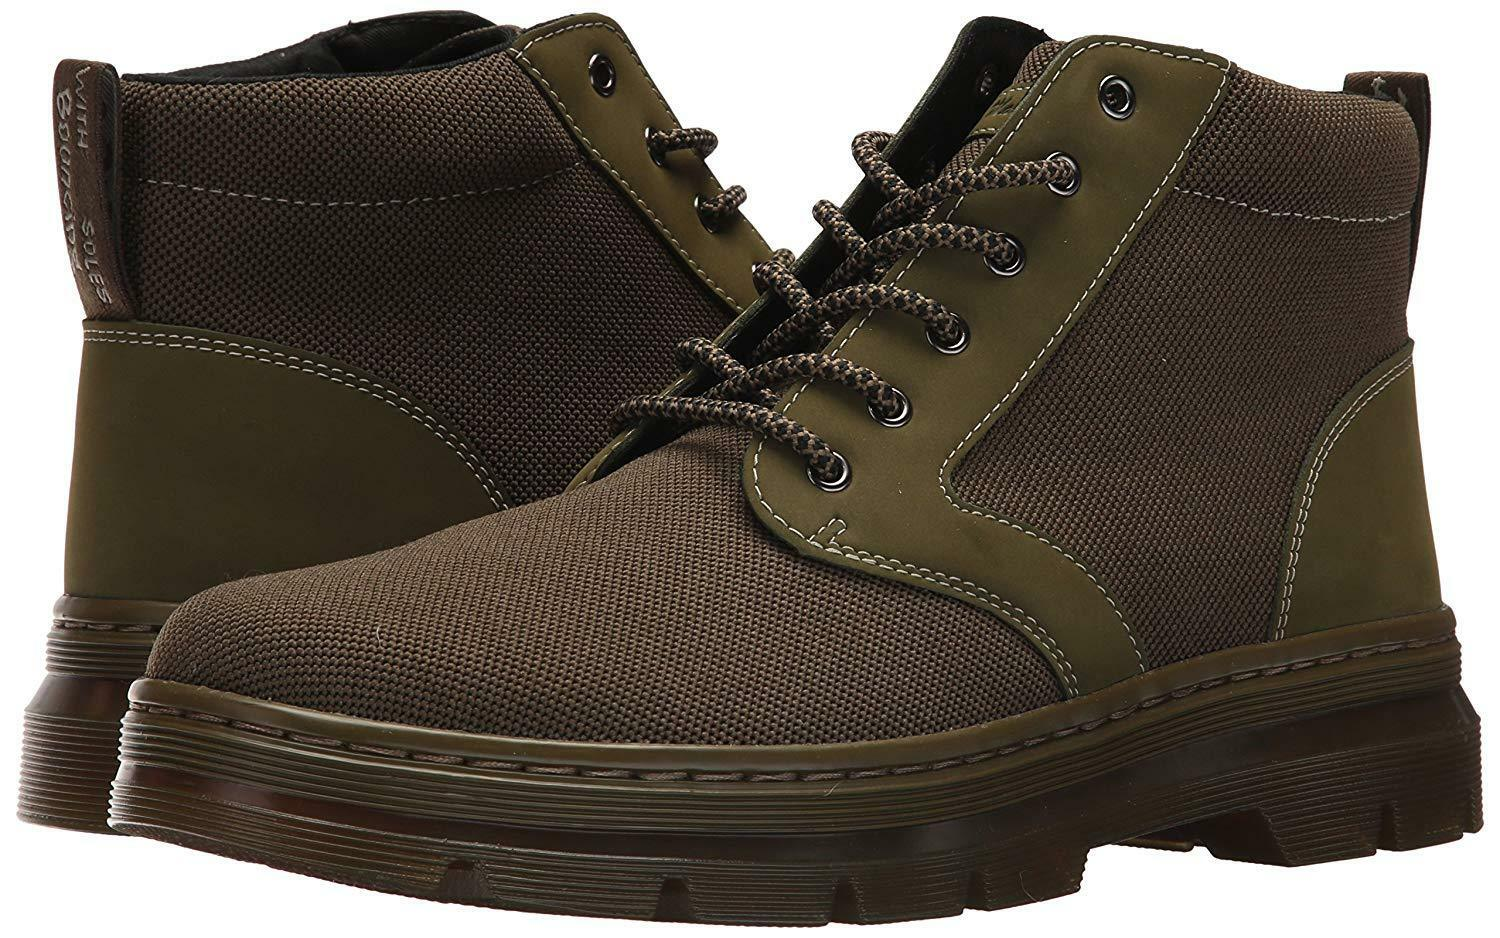 DR MARTENS CHUKKA BOOT MID OLIVE KNIT BRAND NEW Eu38